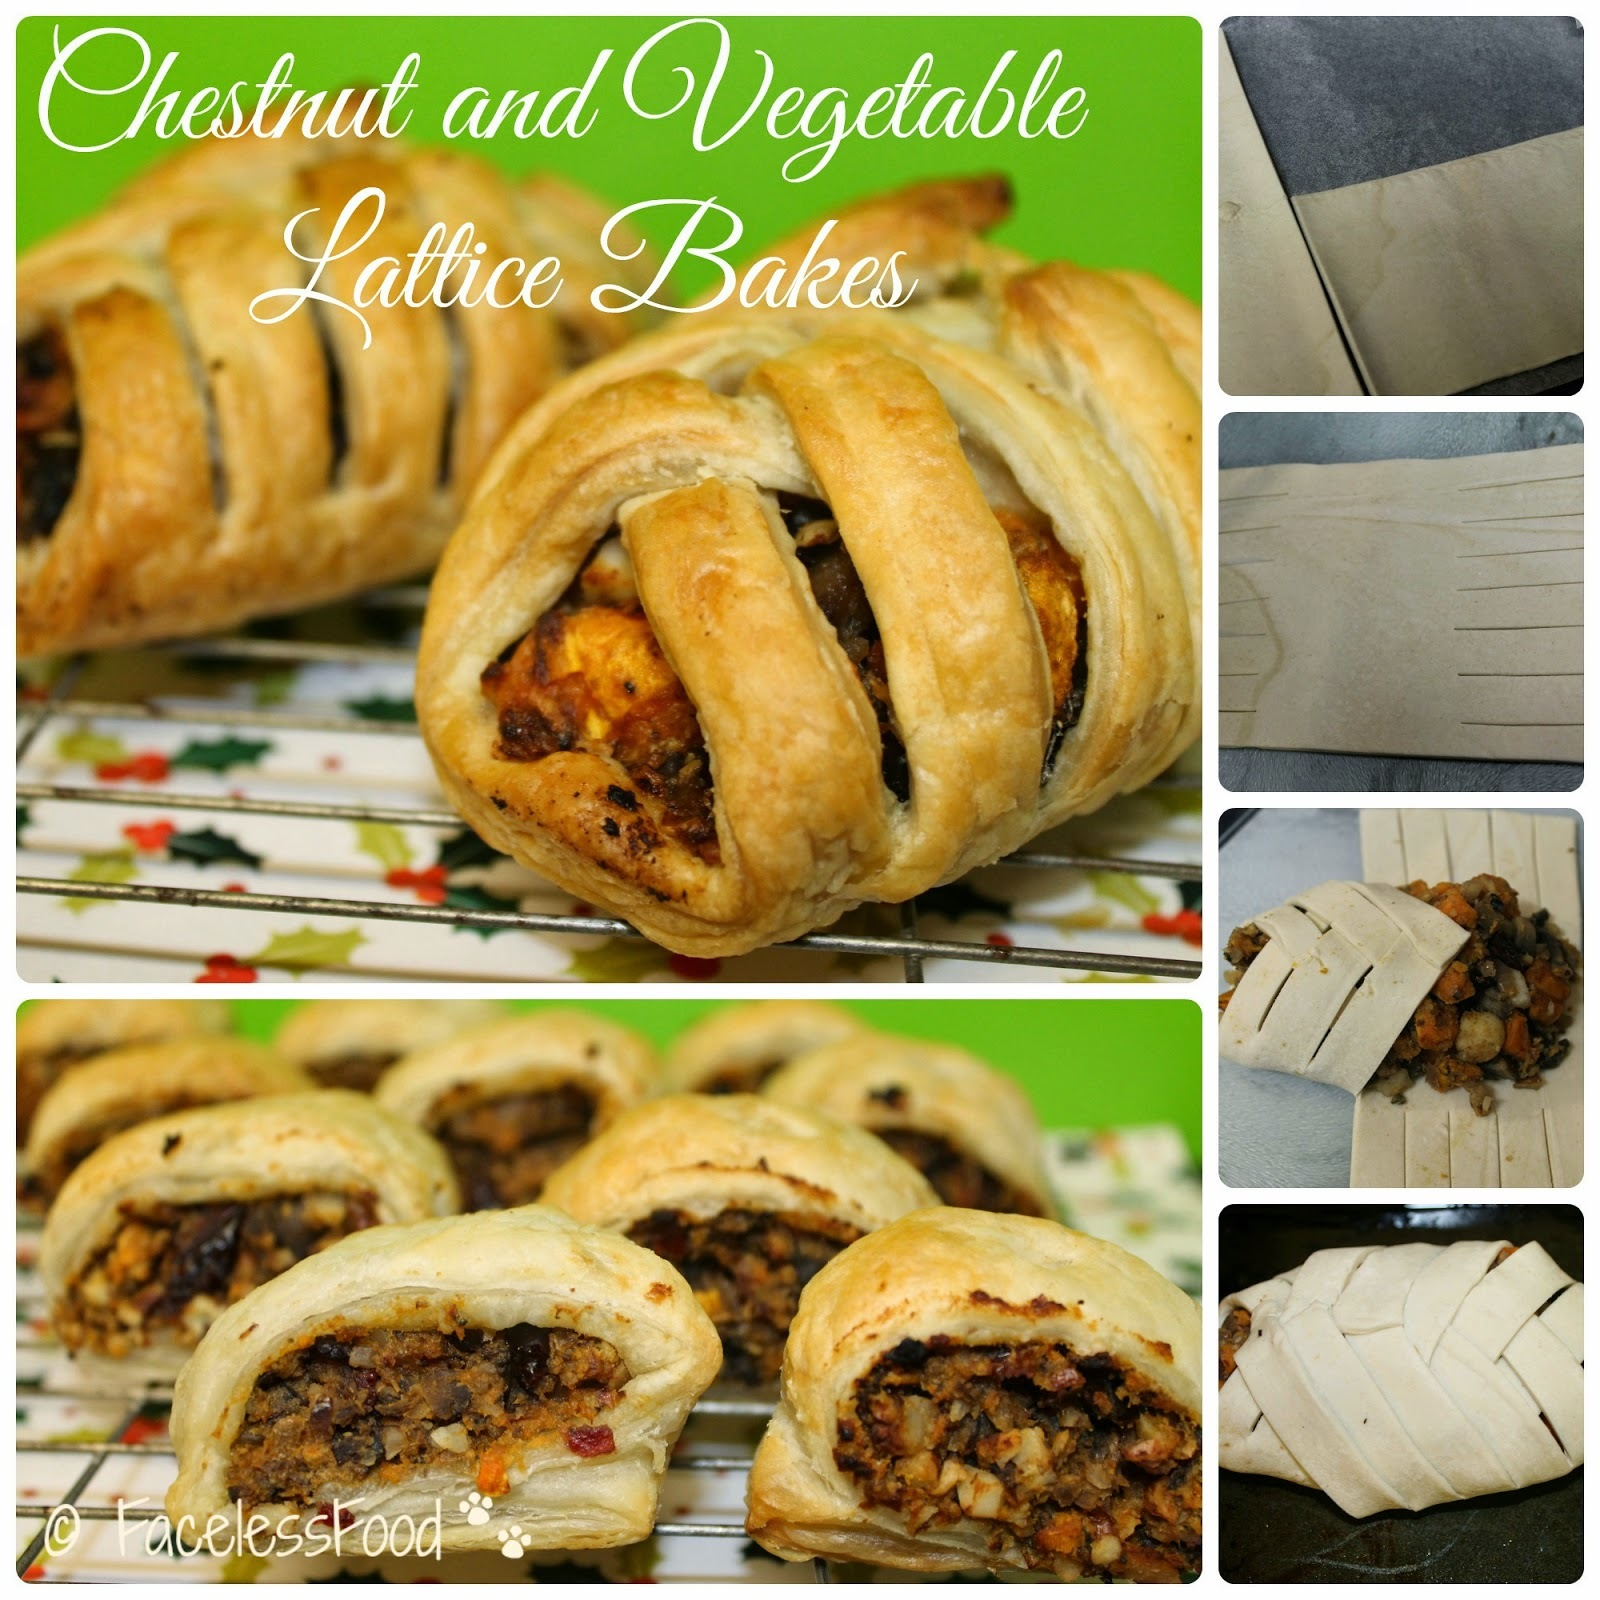 Chestnut and Vegetable Lattice Bakes